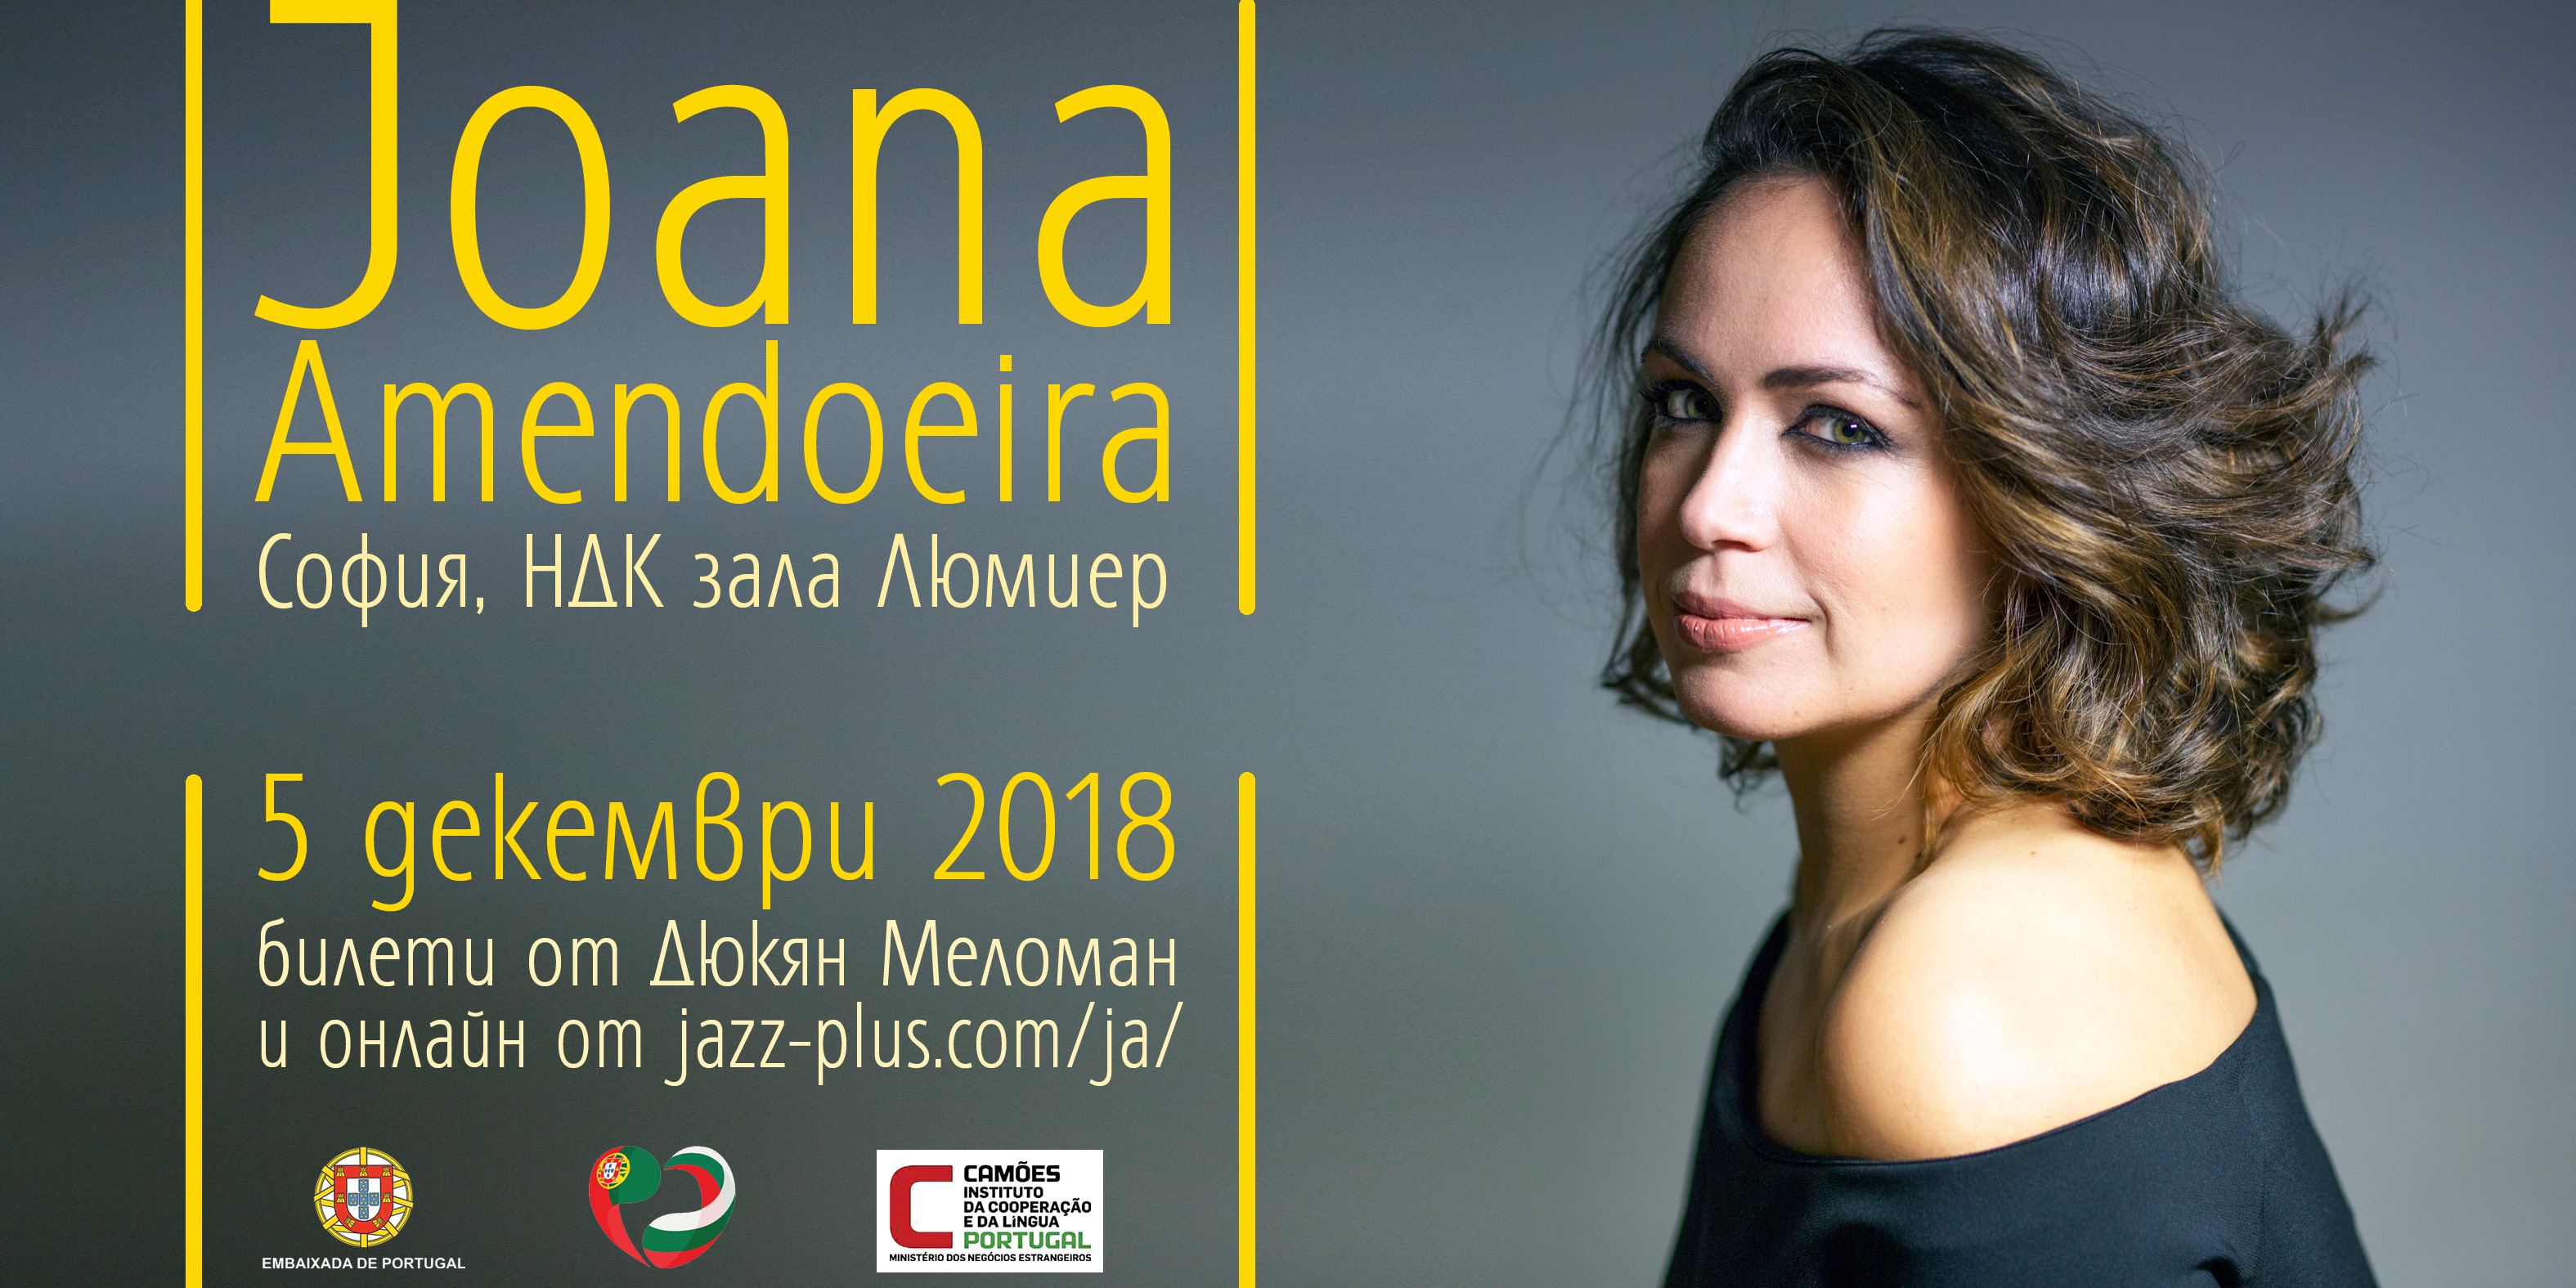 Joana Amendoeira in Sofia, Dec 5, 2018, Lumiere Cinema 1